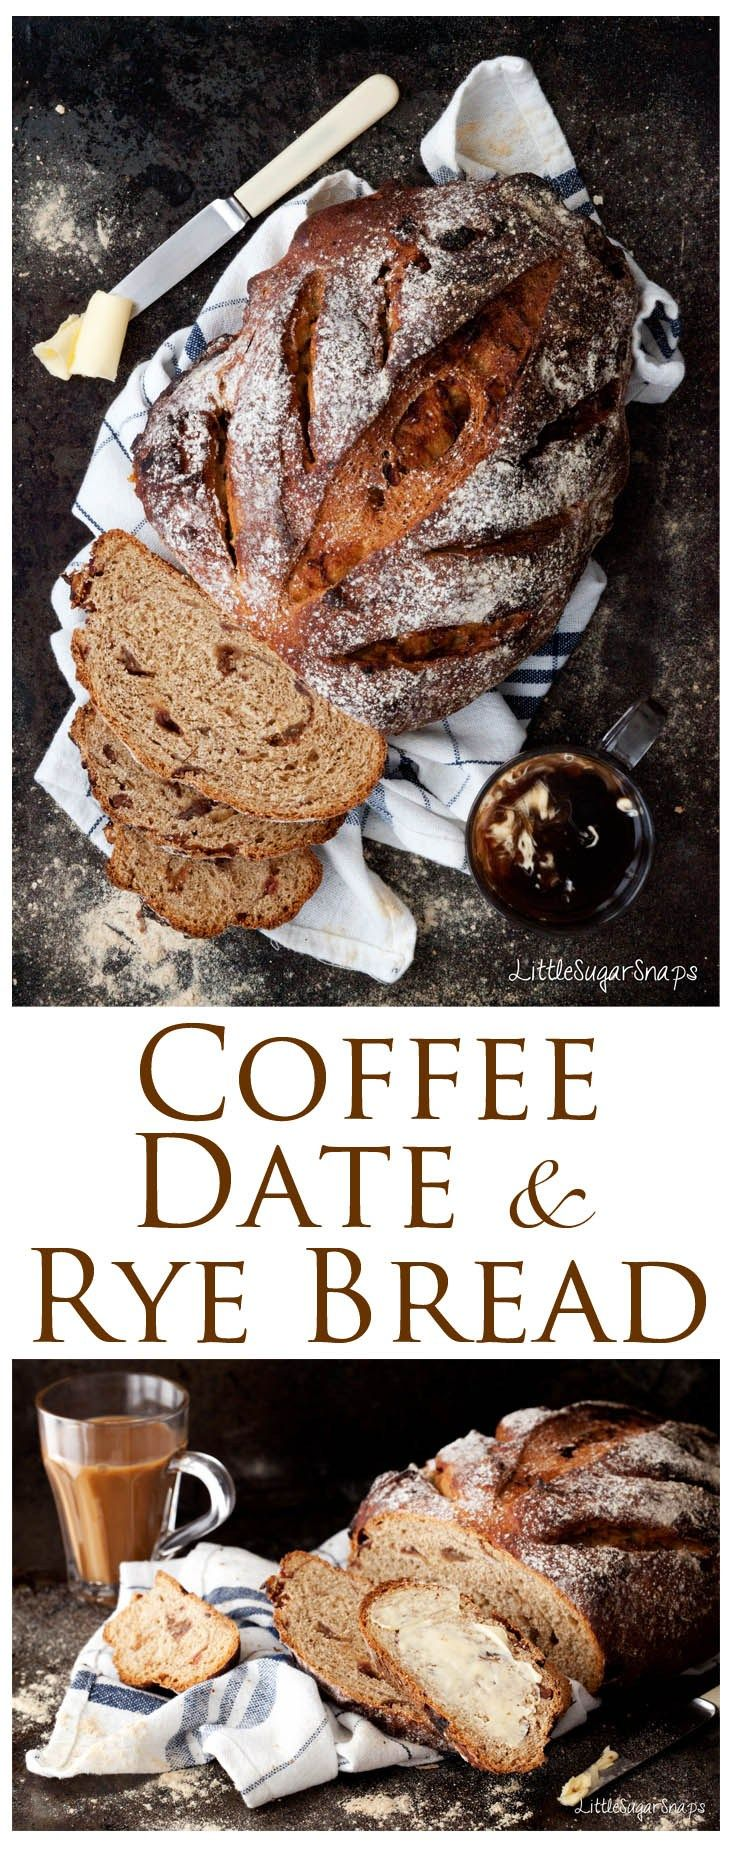 Homemade Coffee Date Rye Bread - a combination of sweet dates, bitter coffee & sour rye makes a great simple breakfast.